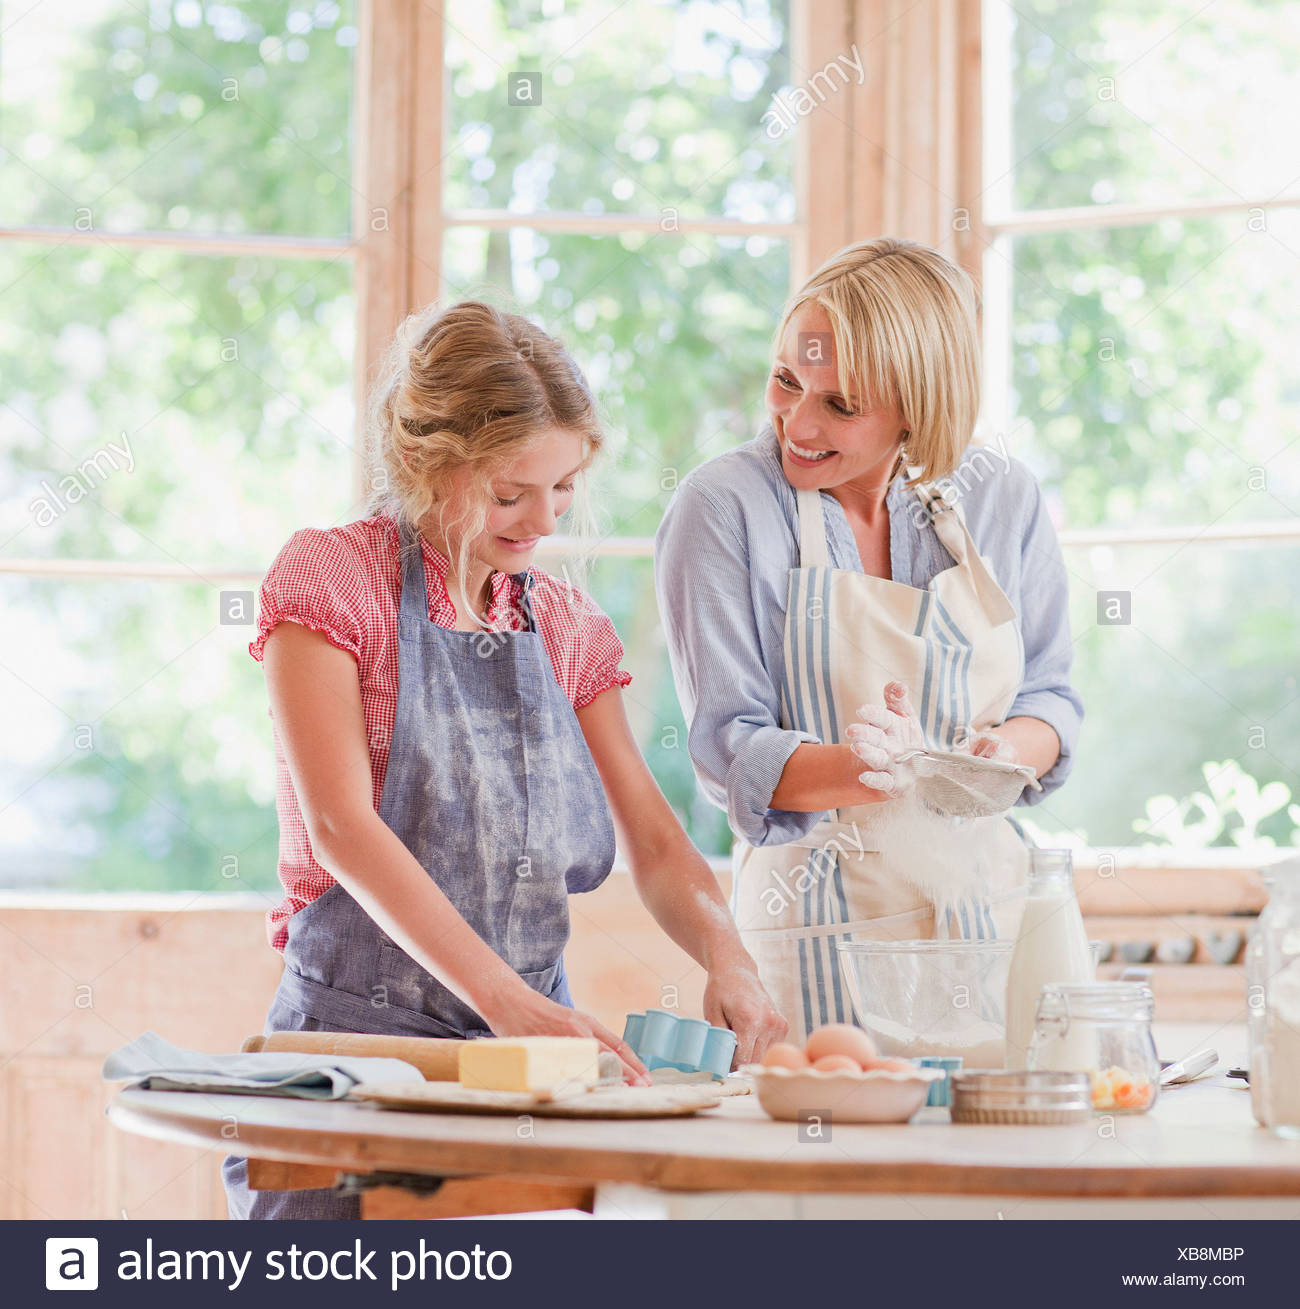 Mother and daughter baking at table in kitchen - Stock Image